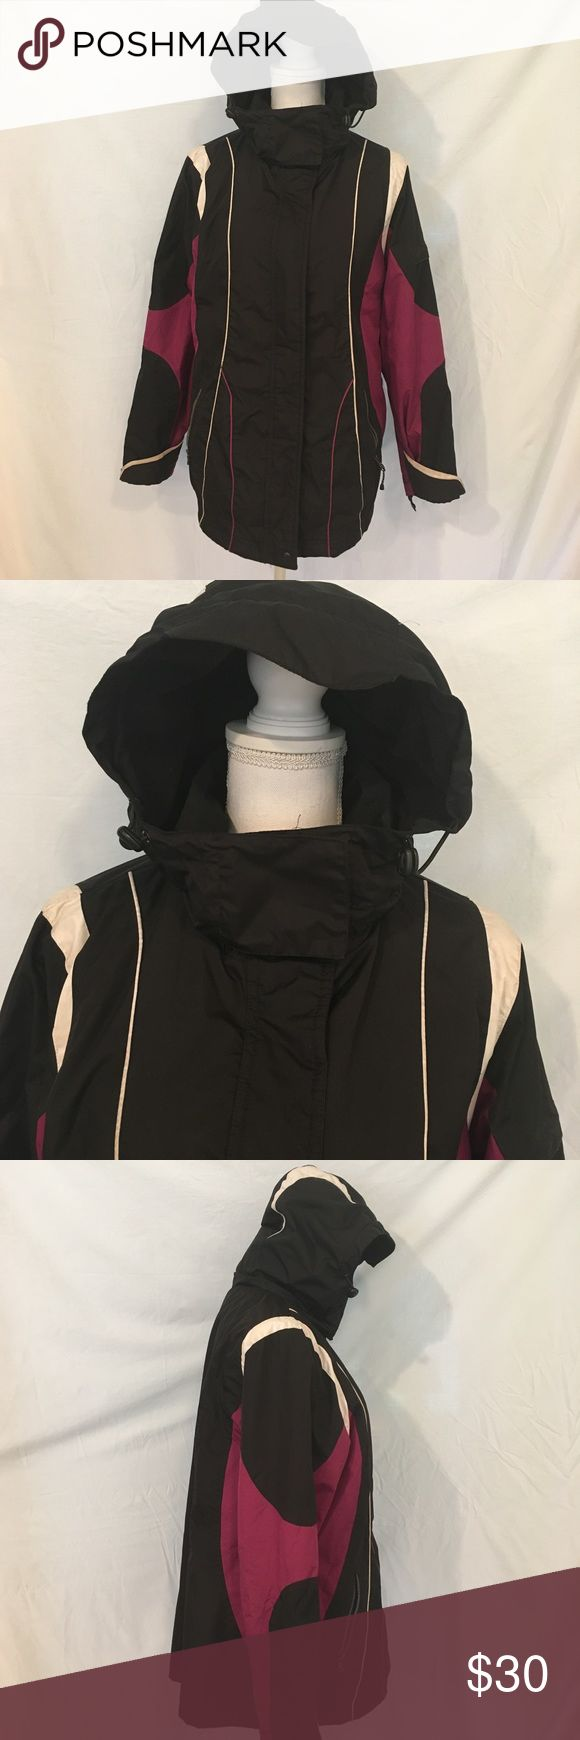 SJB Active Marroon and Black Winter Coat SJB Active Marroon and Black Winter Coat. Very warm winter coat. Great for outdoor activities like skiing and snowboarding. Phone and wallet pouches inside. Zipper pockets on outside. Coat is lined and is complete with hood. SJB Active Jackets & Coats